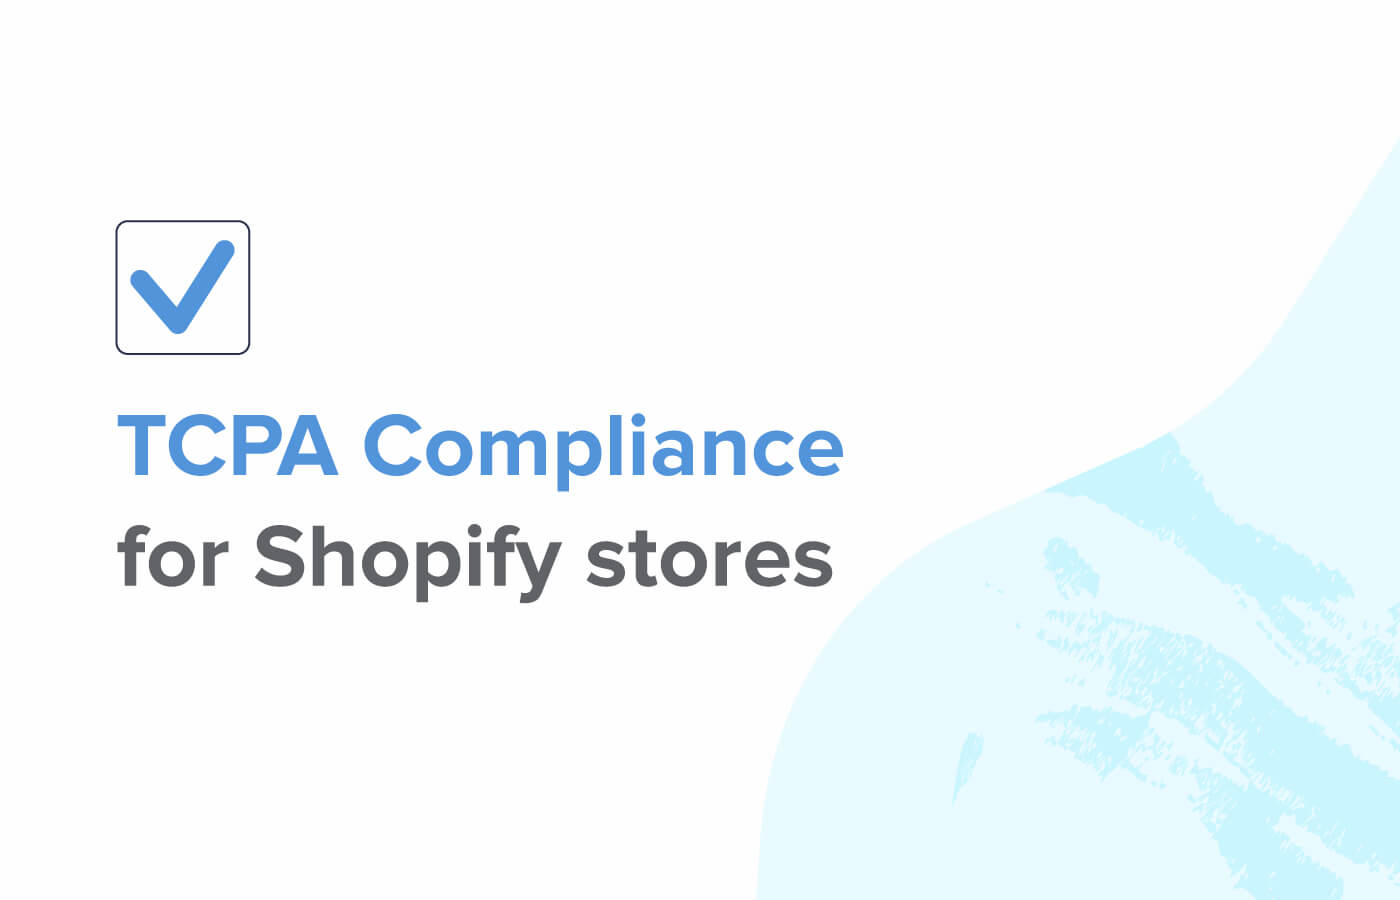 The TCPA and what it means for your Shopify store